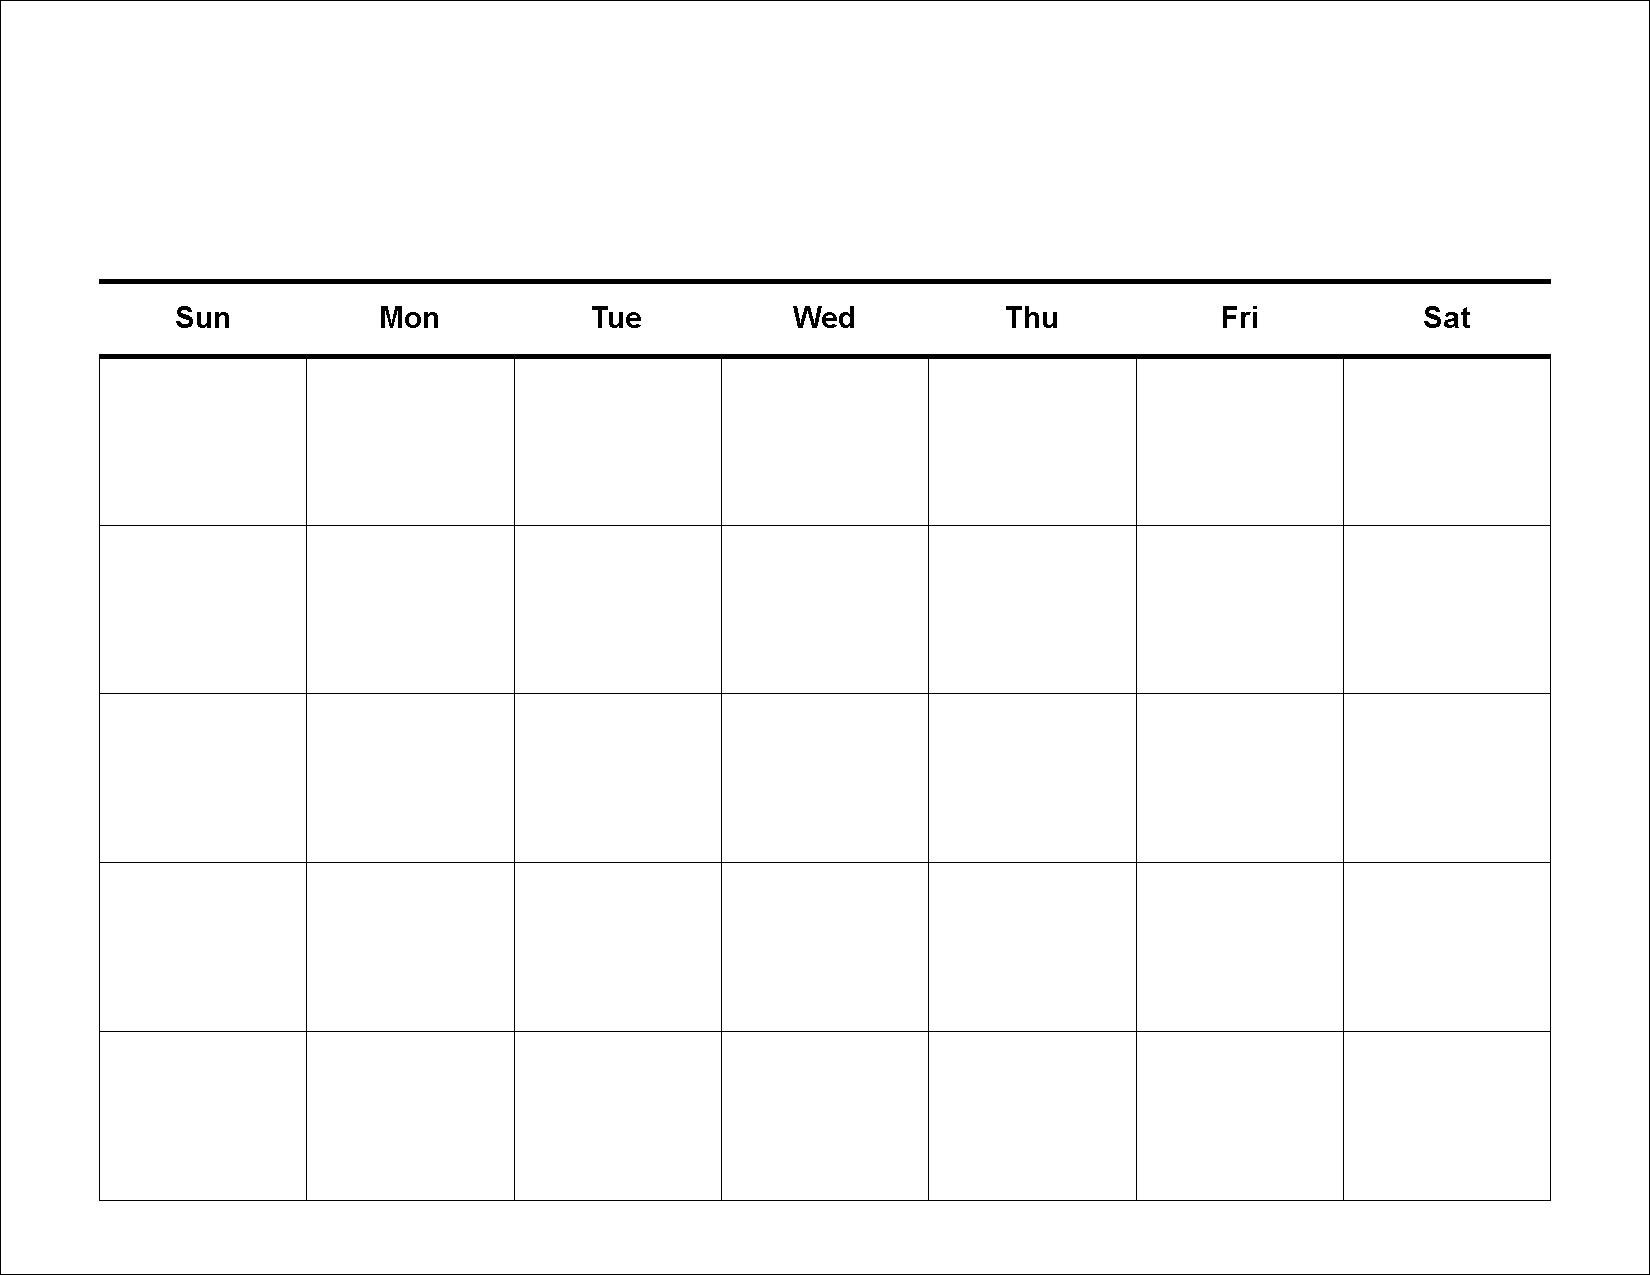 30-Day-Calendar-Template-Printable-Large intended for Blank Calendar Print-Outs Fill In Sept